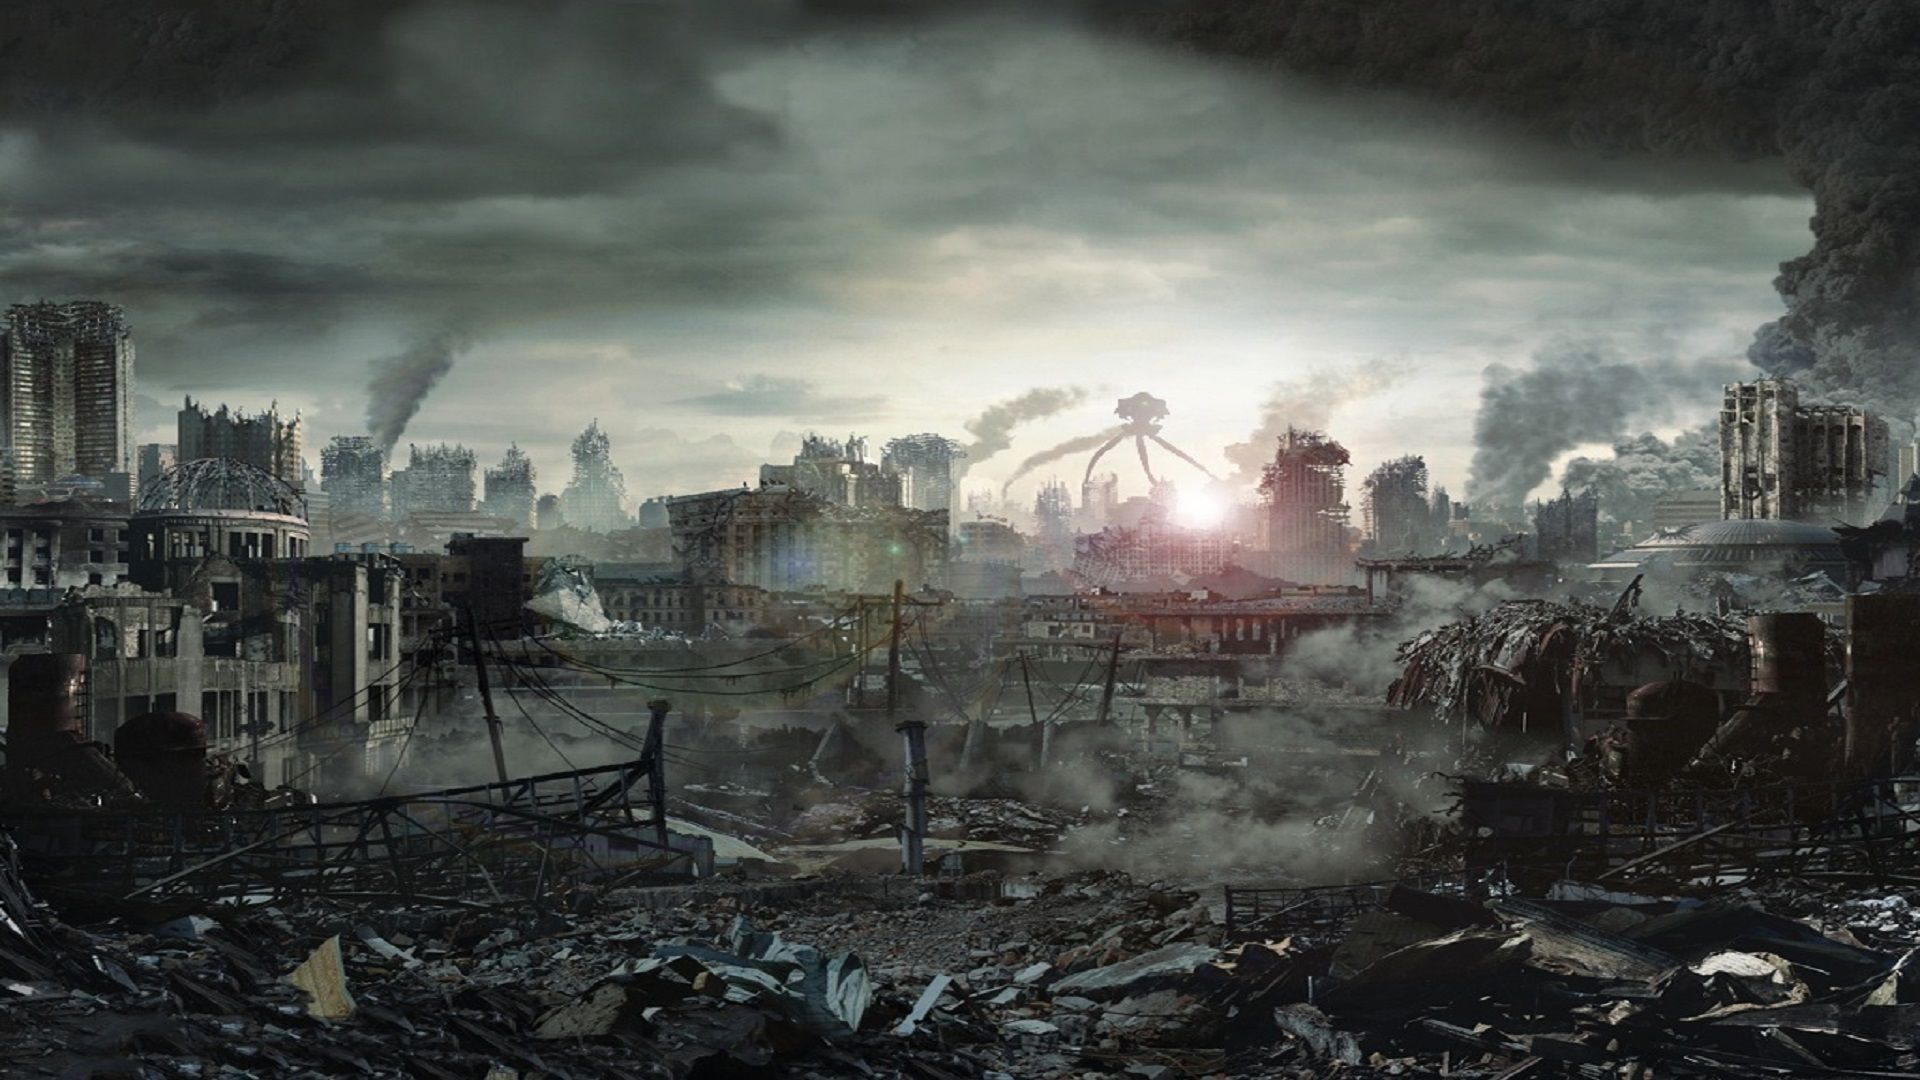 Apocalypse Wallpapers Top Free Apocalypse Backgrounds